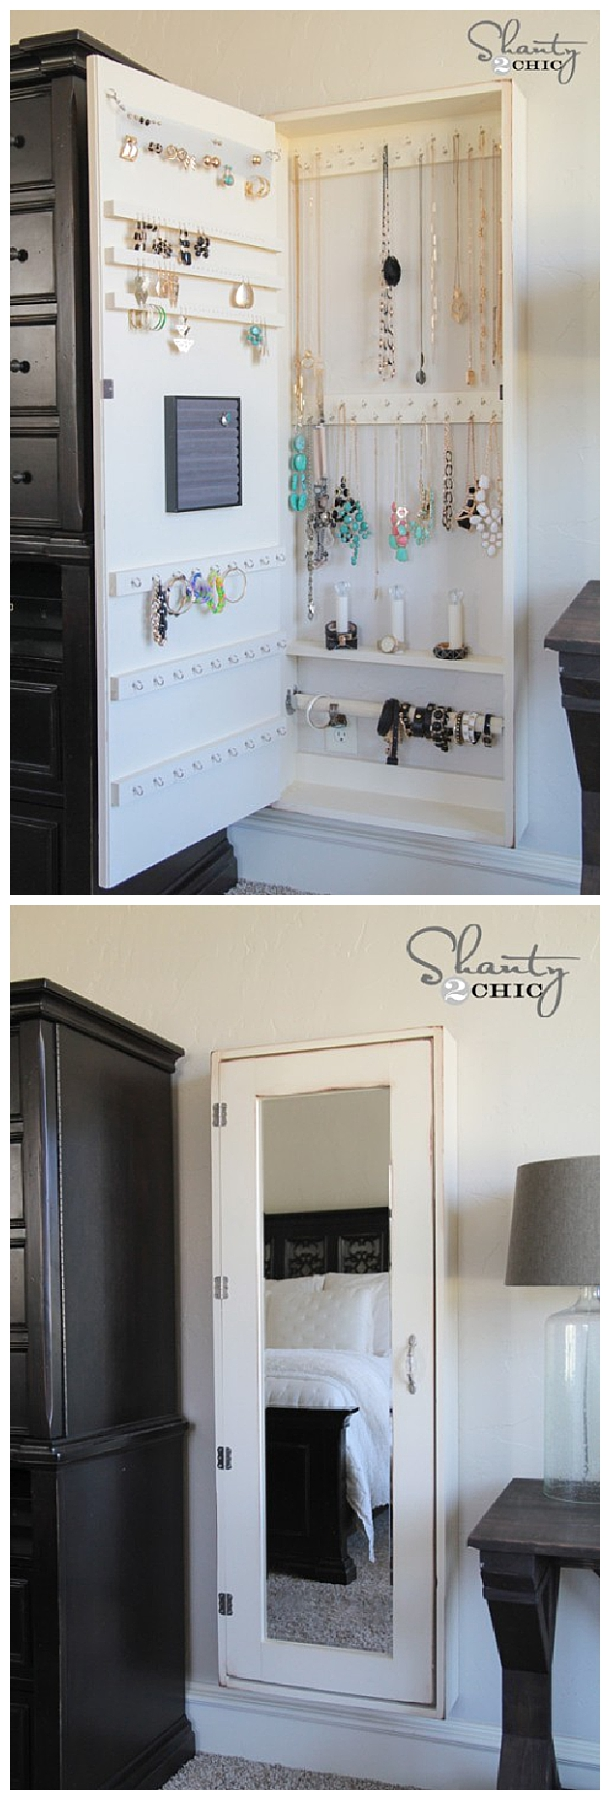 DIY Bathroom Organization Ideas - DIY Jewelry Organizer Cabinet and Full Length Mirror all in one